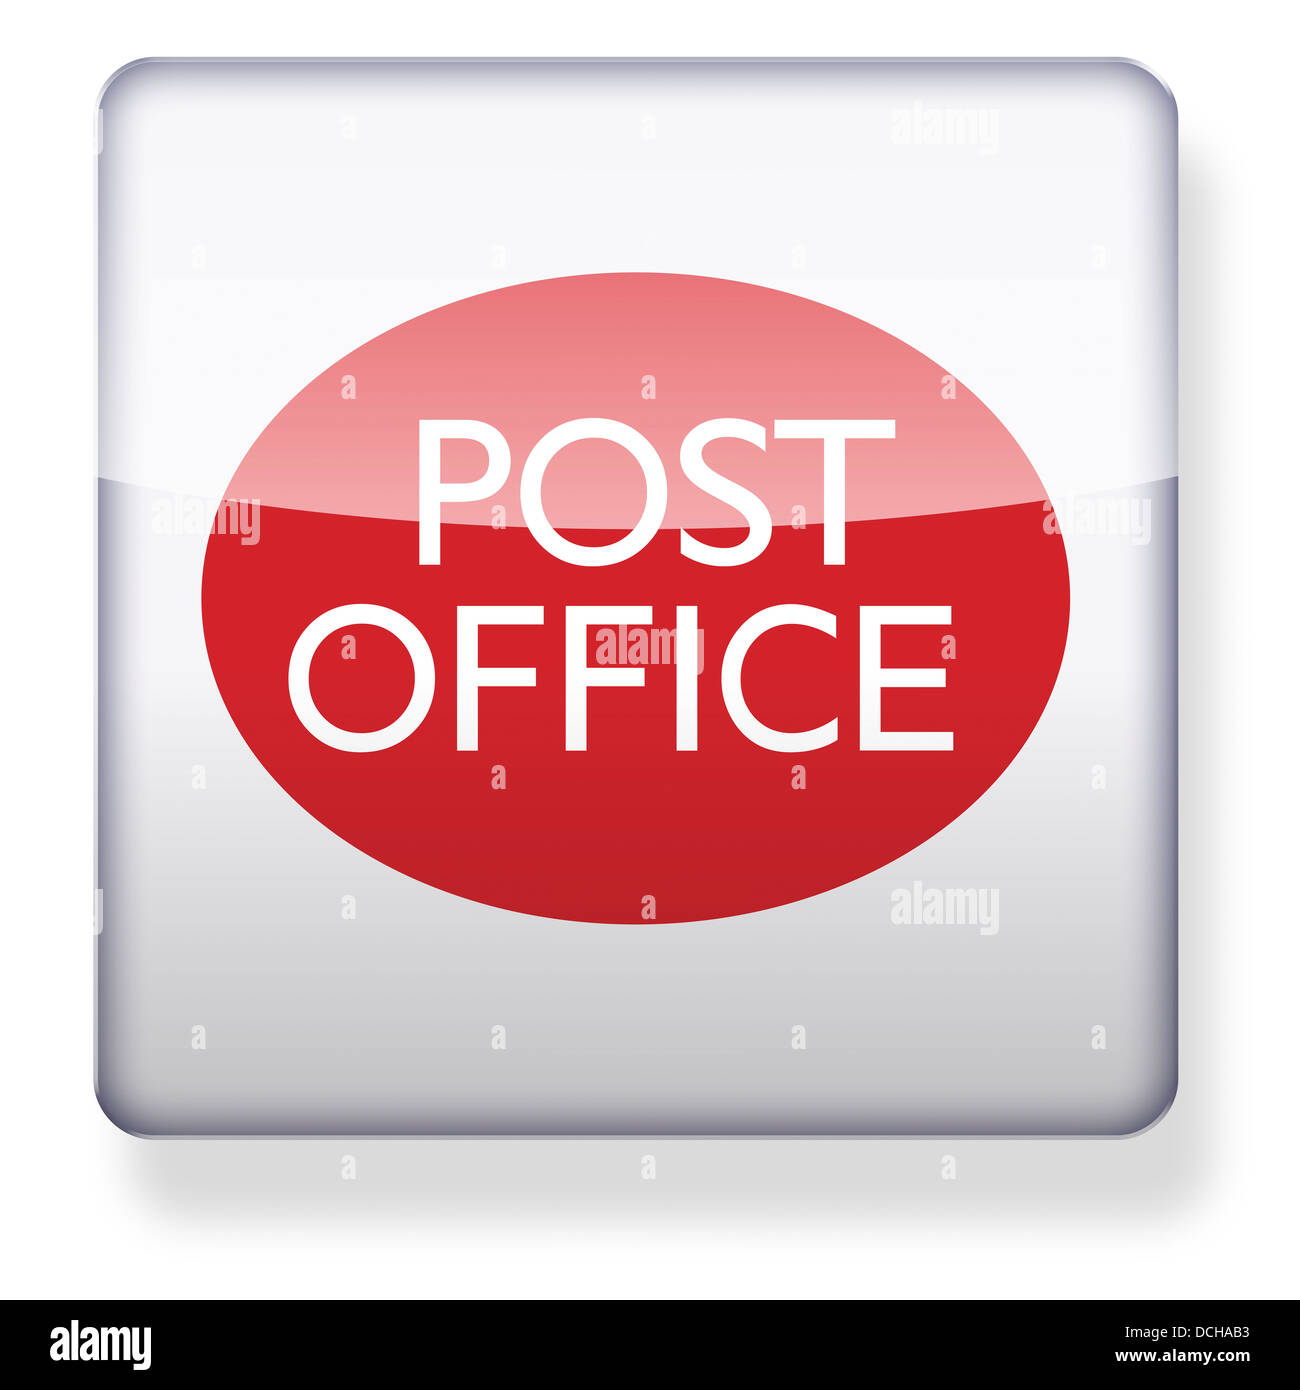 UK Post Office Logo As An App Icon. Clipping Path Included